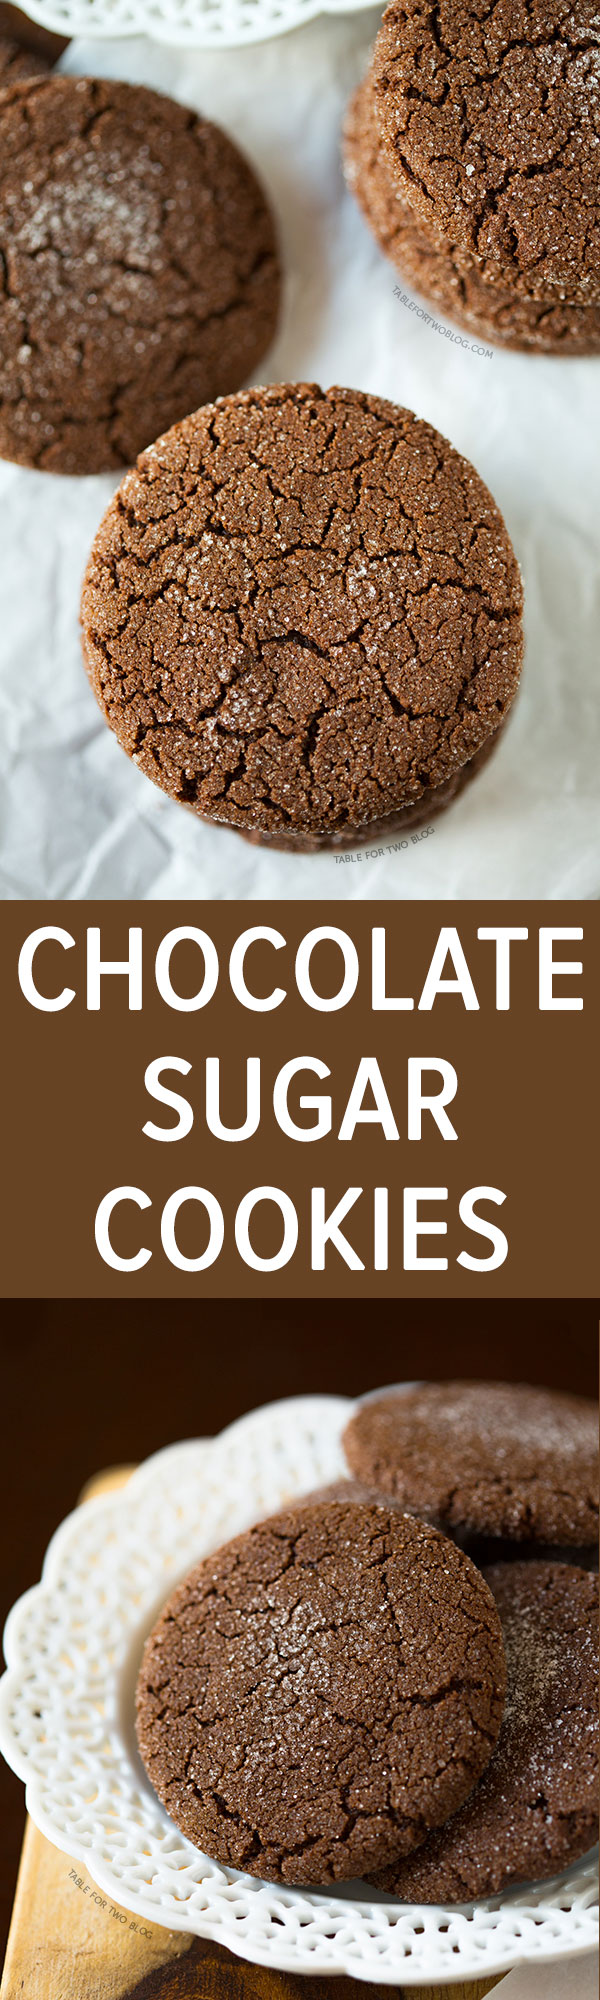 Chocolate Sugar Cookies - Table for Two®